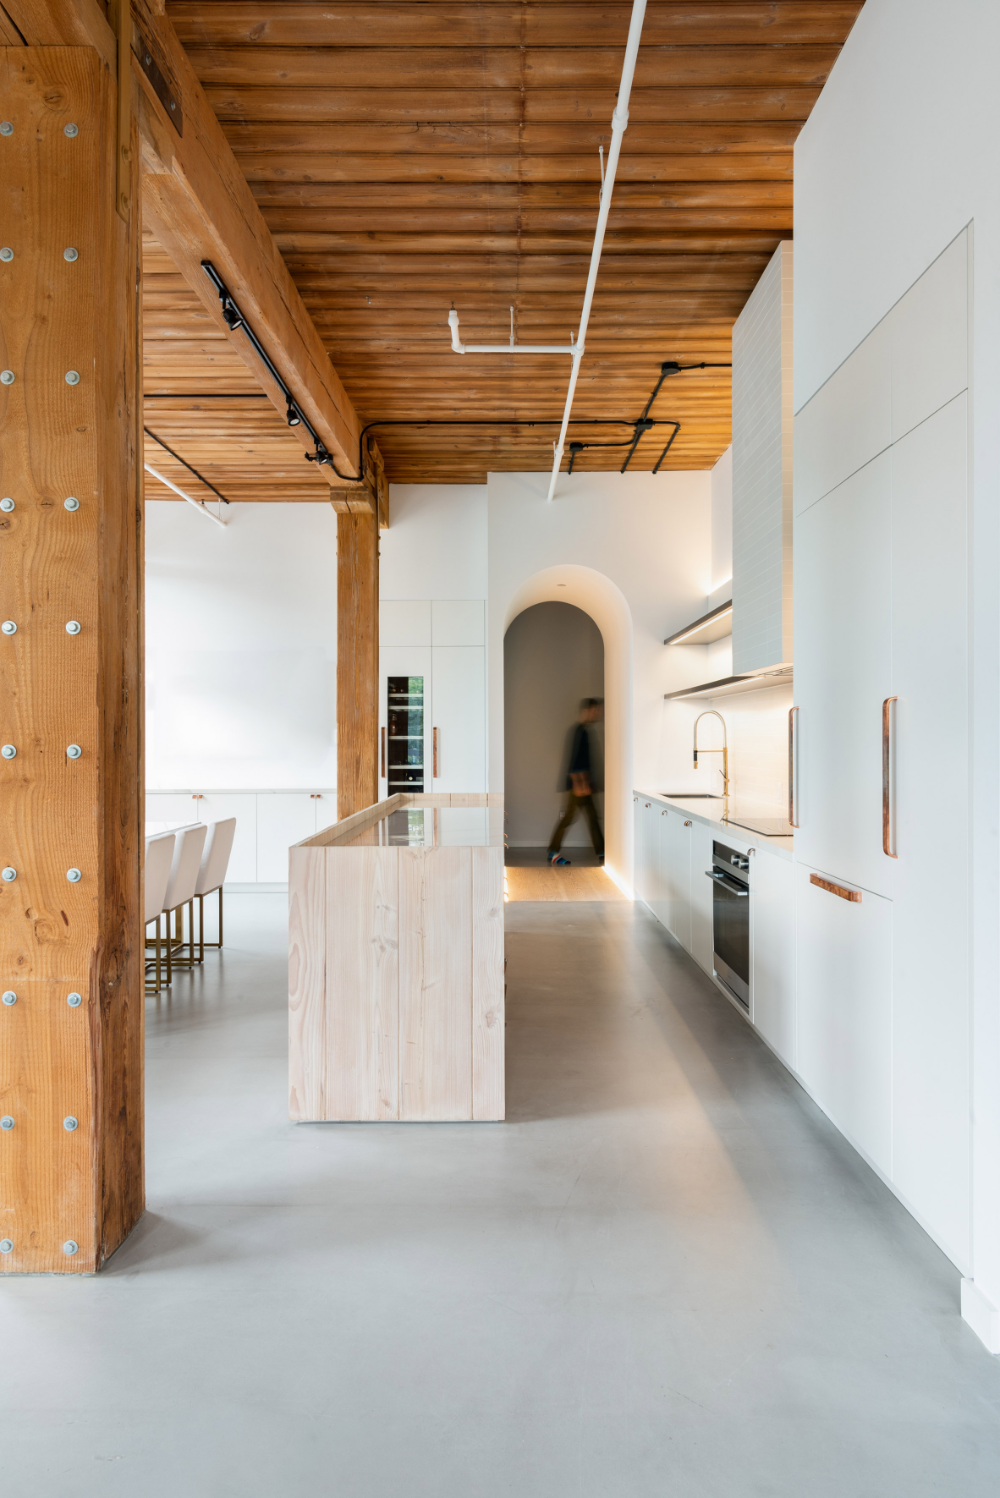 StudioAC links Candy Loft interiors with arched hallways